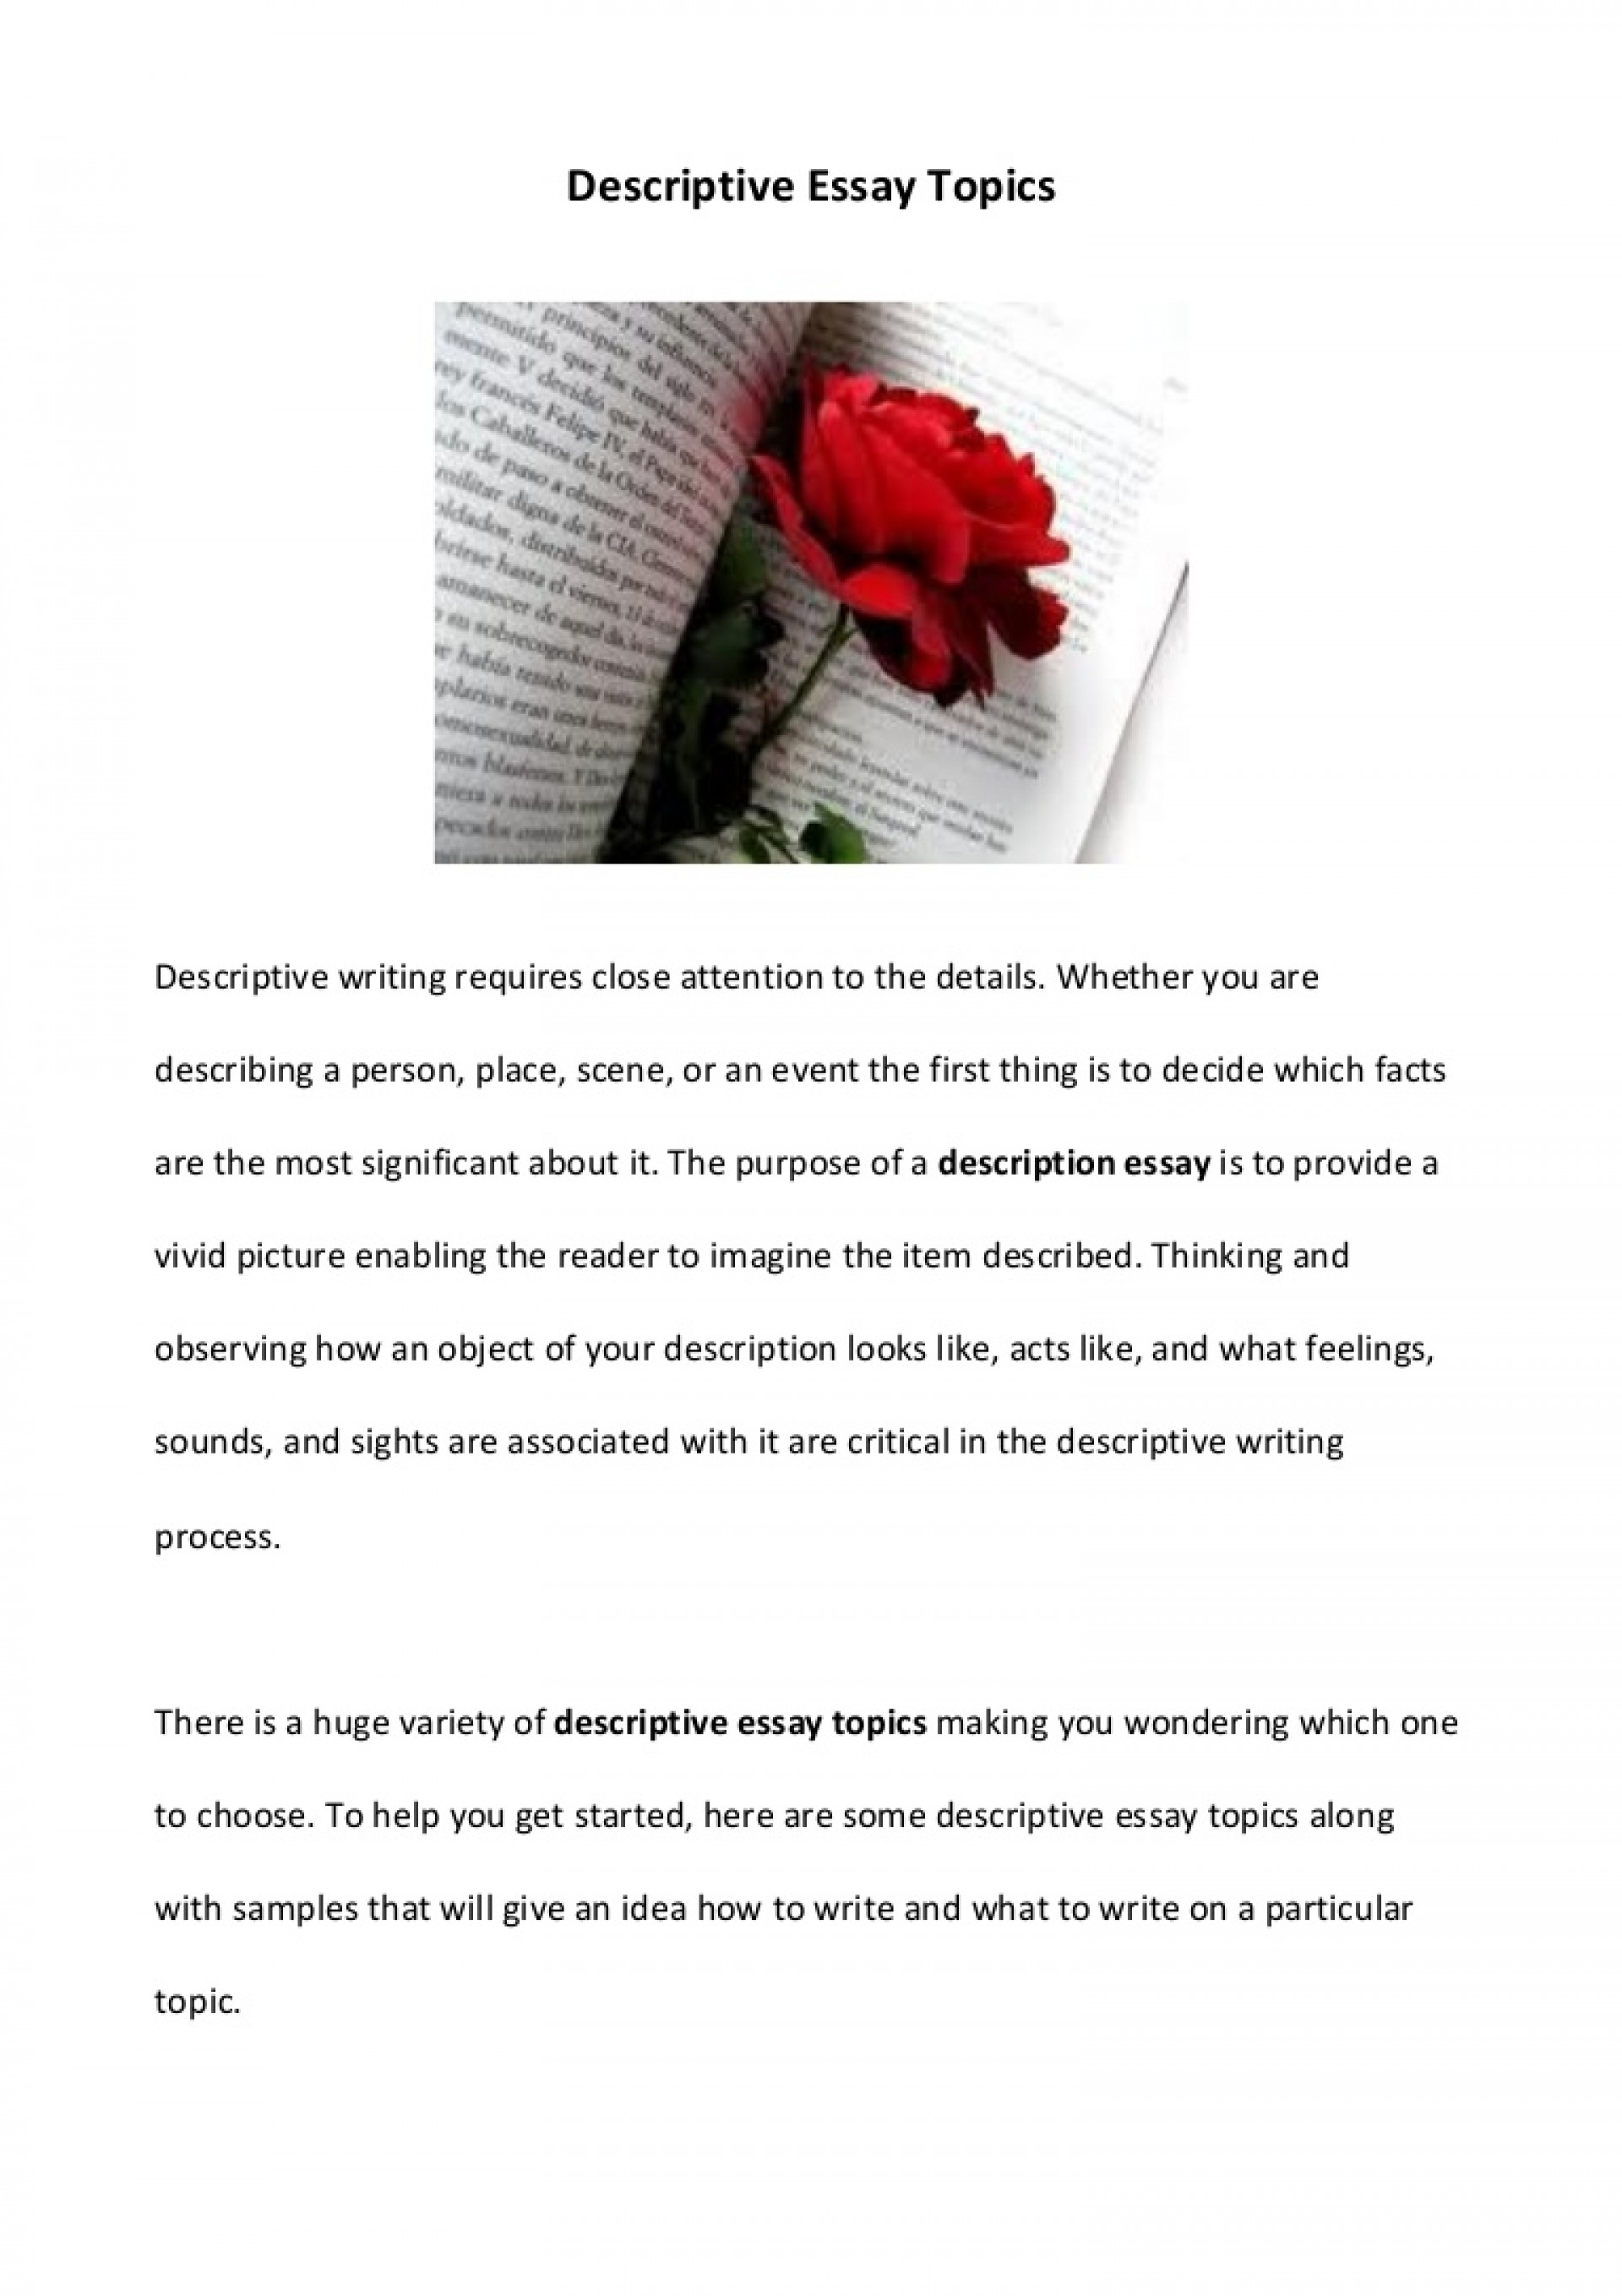 essay on rose flower for class 5